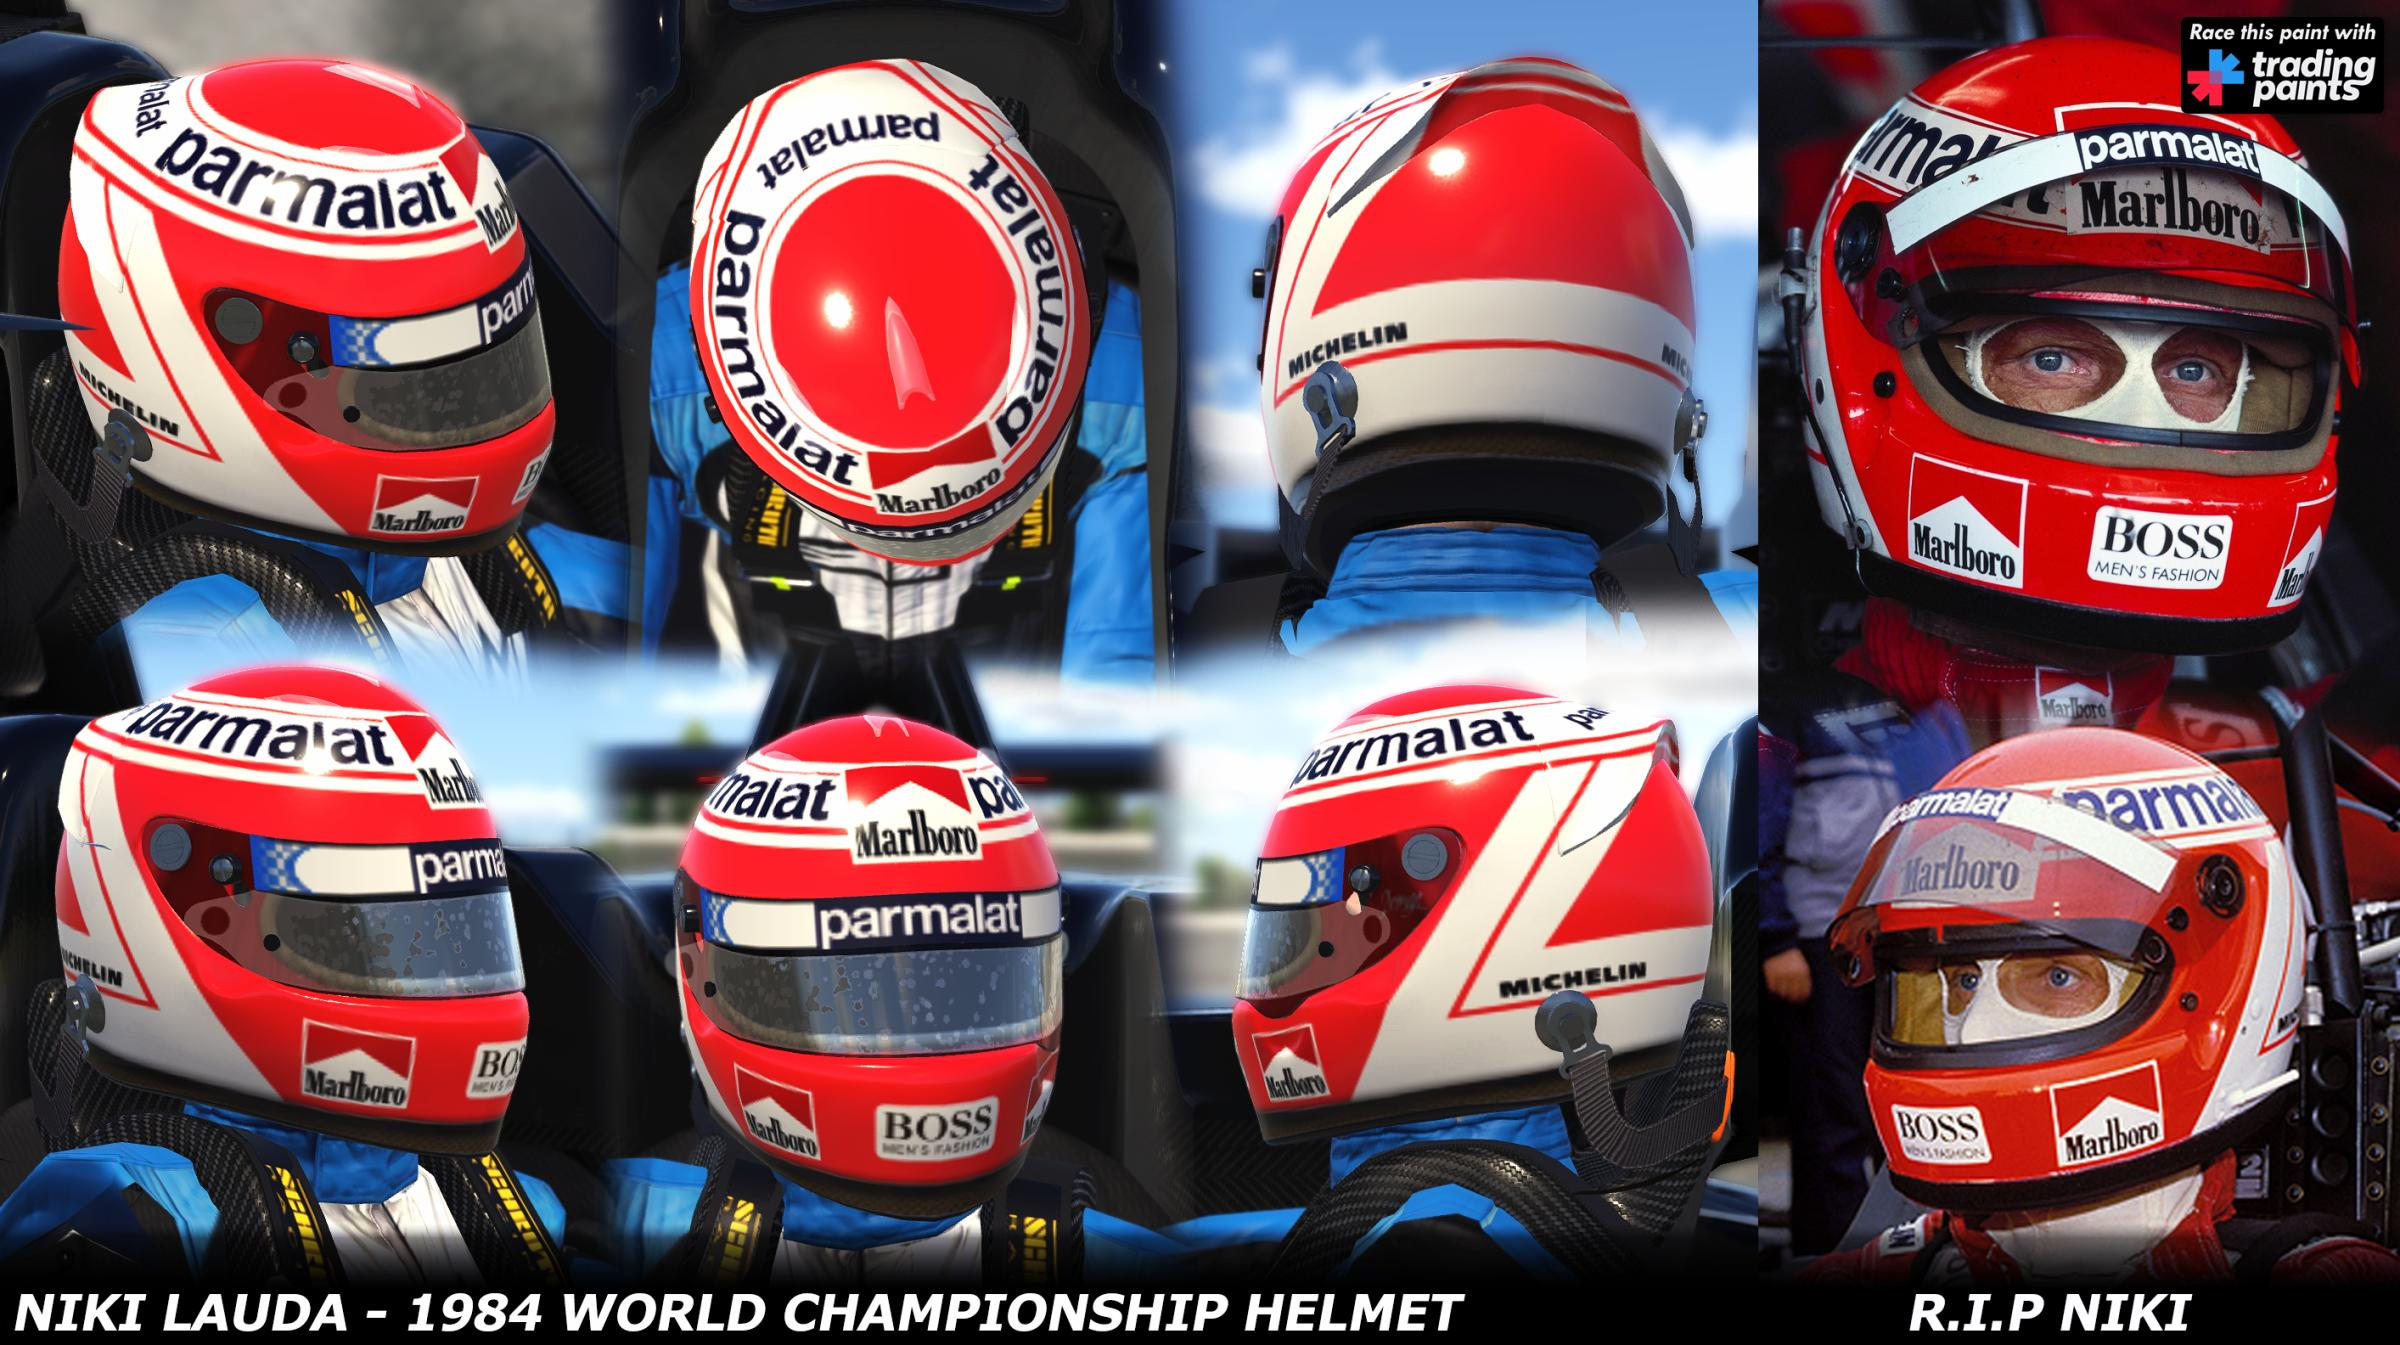 Preview of Niki Lauda - 1984 World Championship Helmet - R.I.P Niki by George Simmons